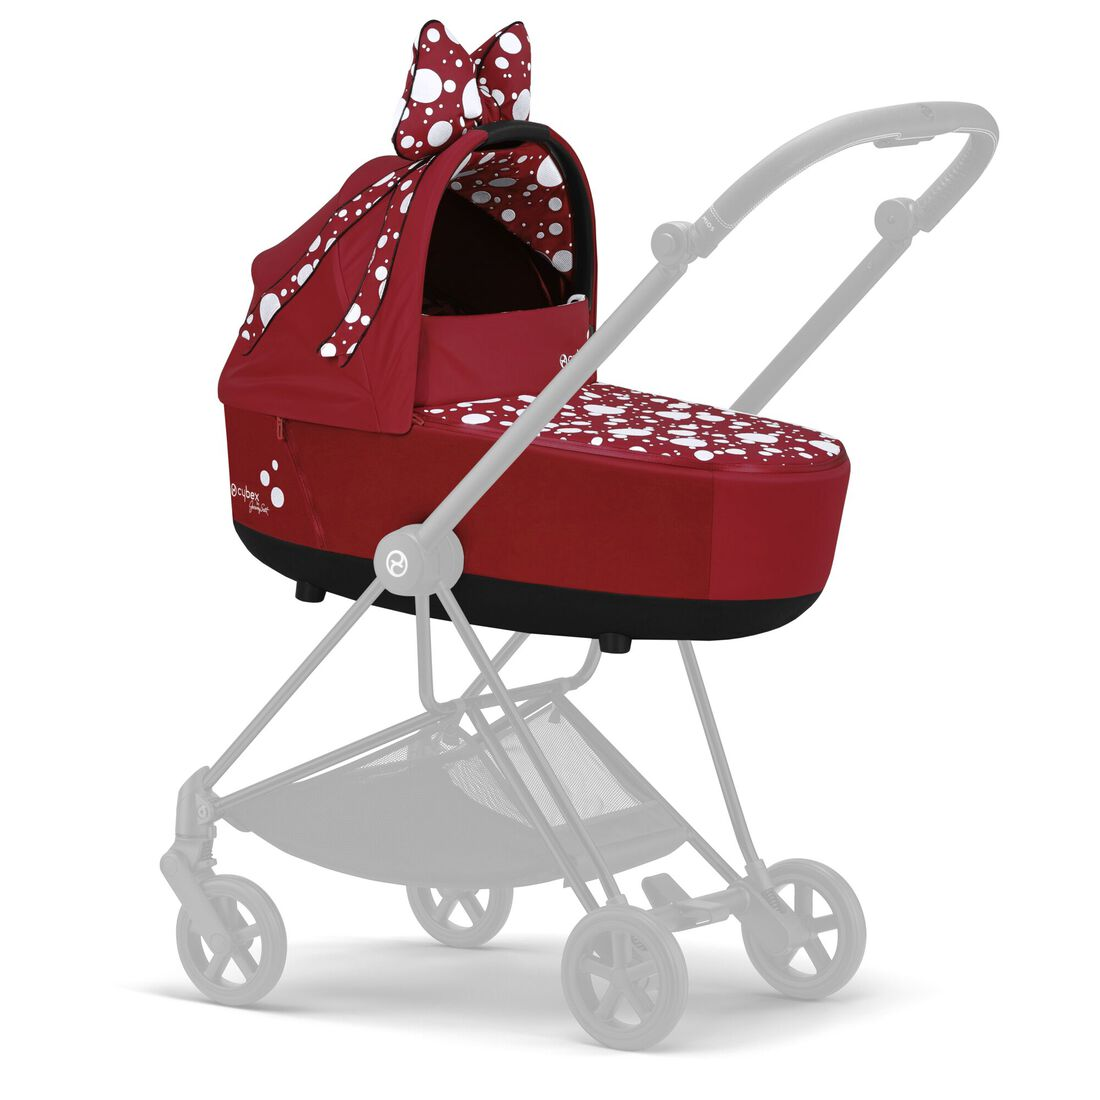 CYBEX Mios Lux Carry Cot - Petticoat Red in Petticoat Red large Bild 4